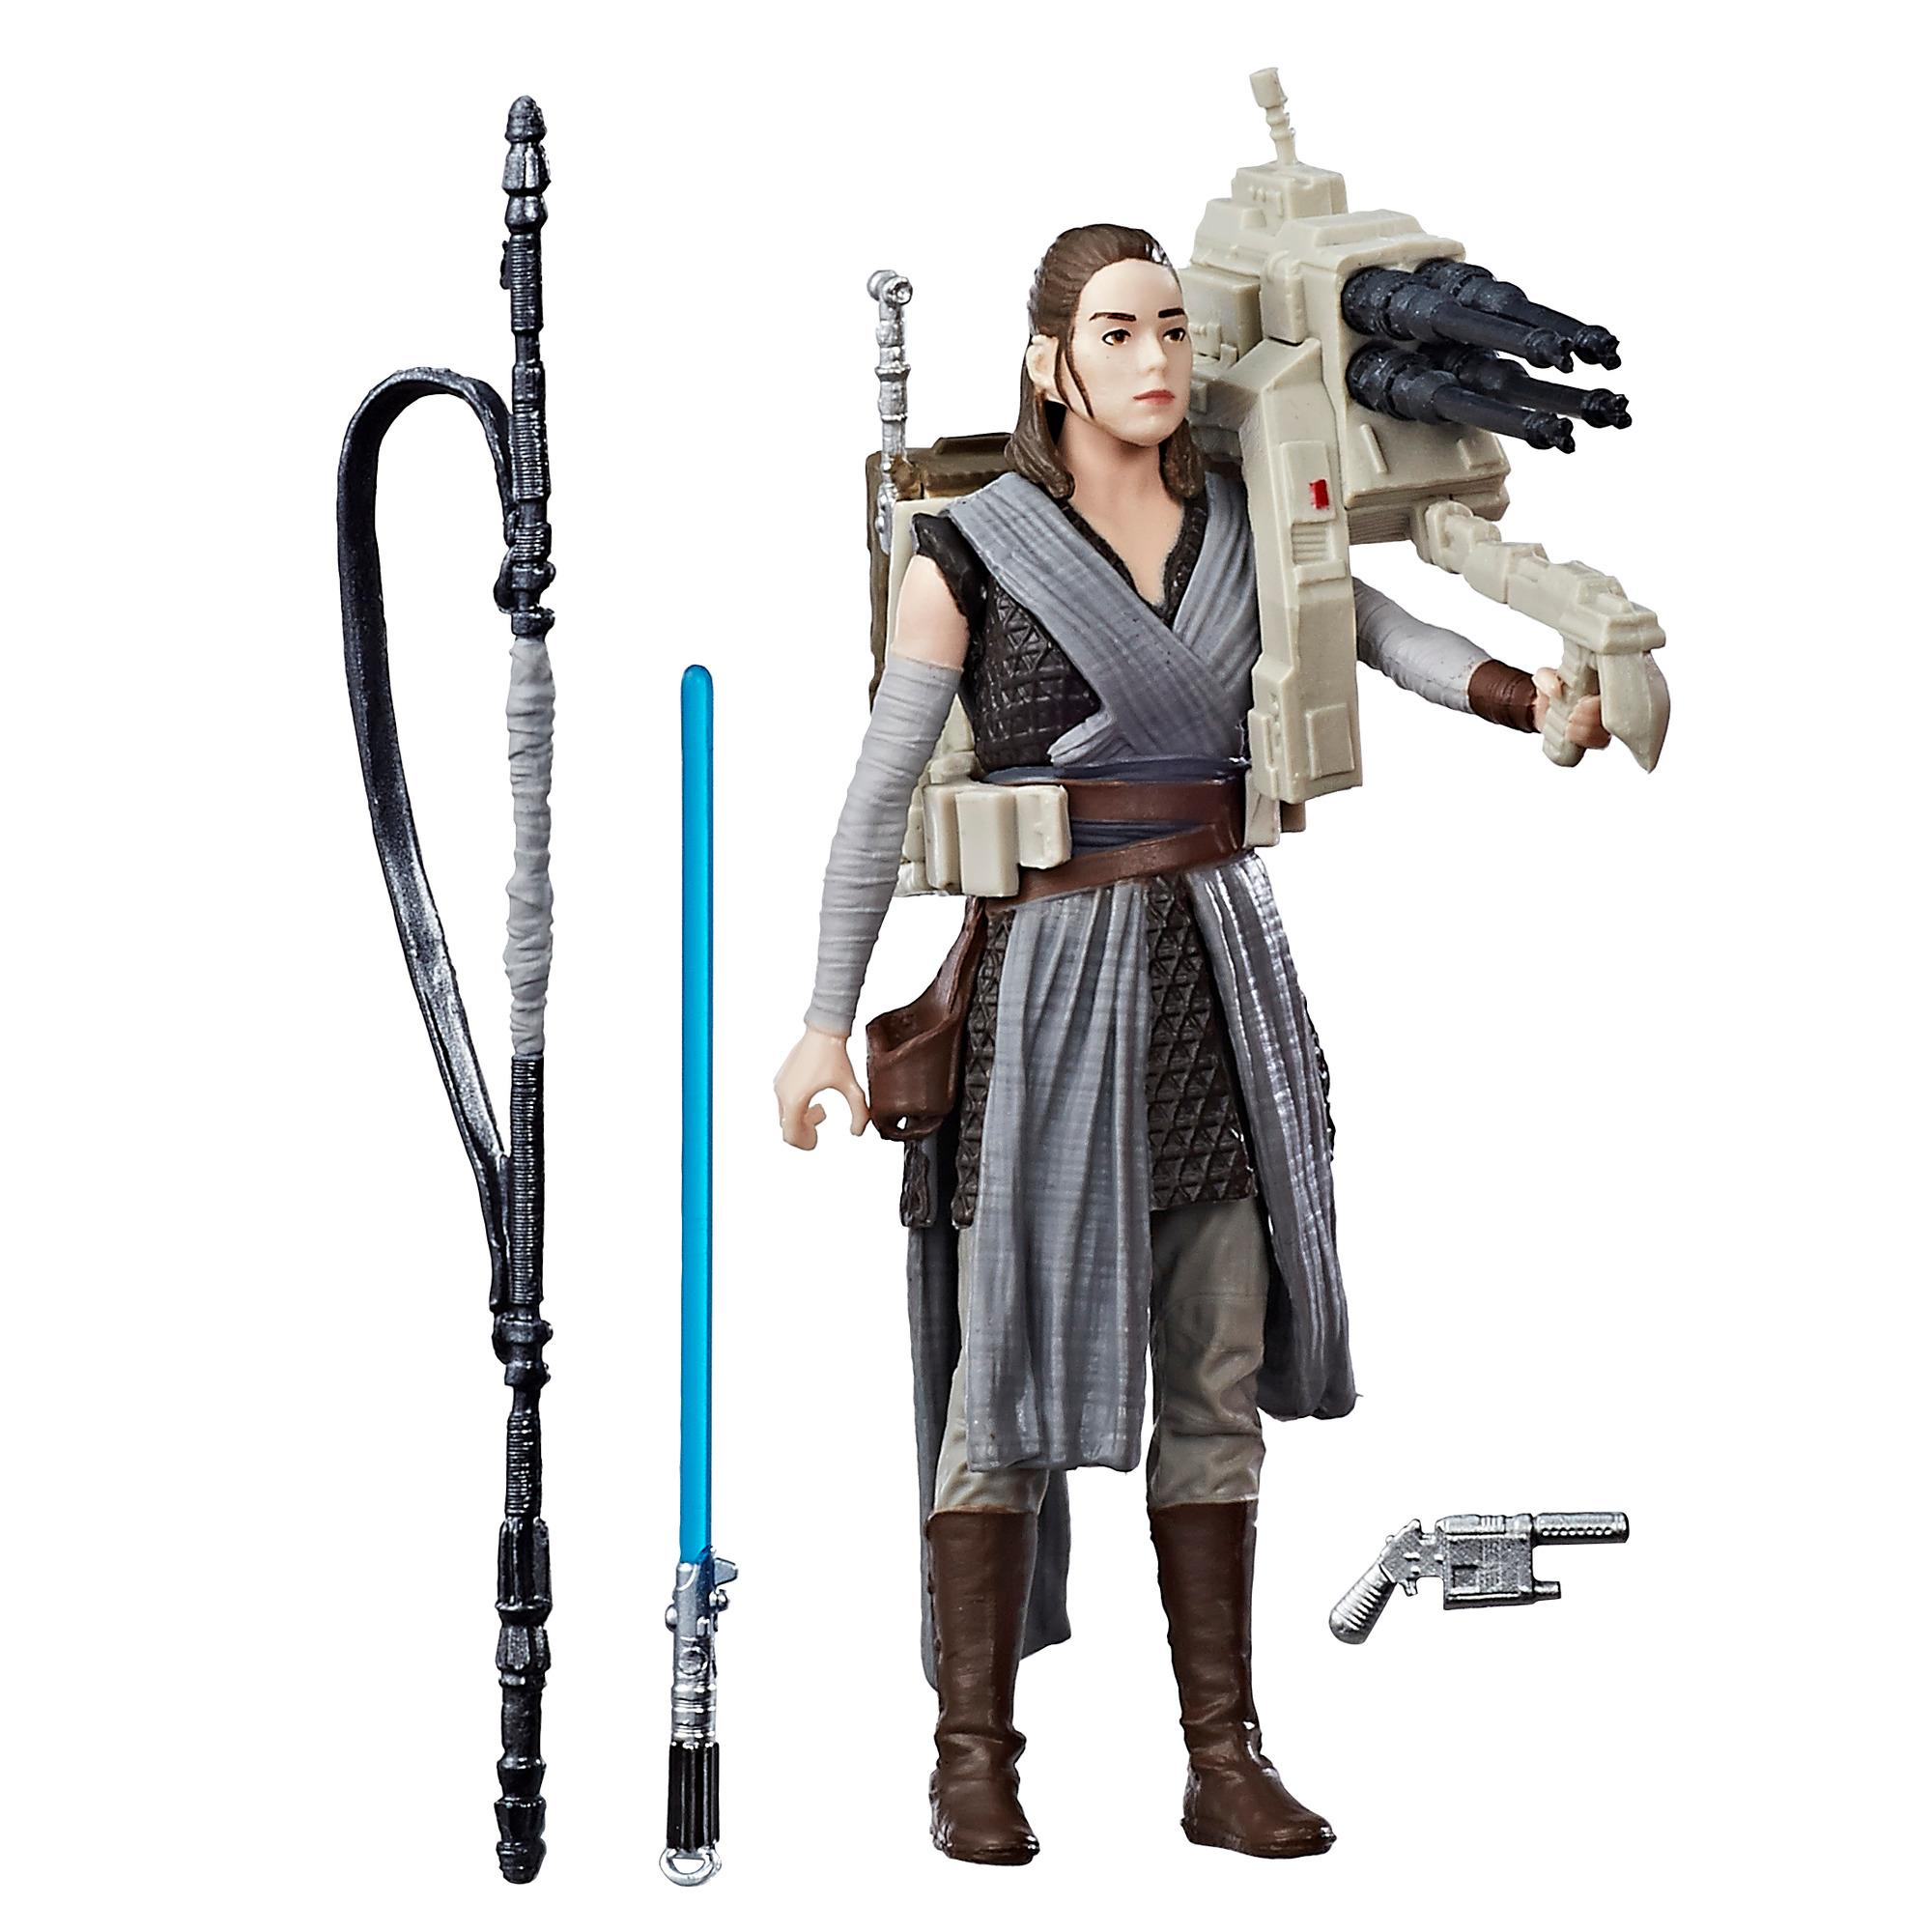 Star Wars Rey (Jedi Training) & Elite Praetorian Guard 2-Pack